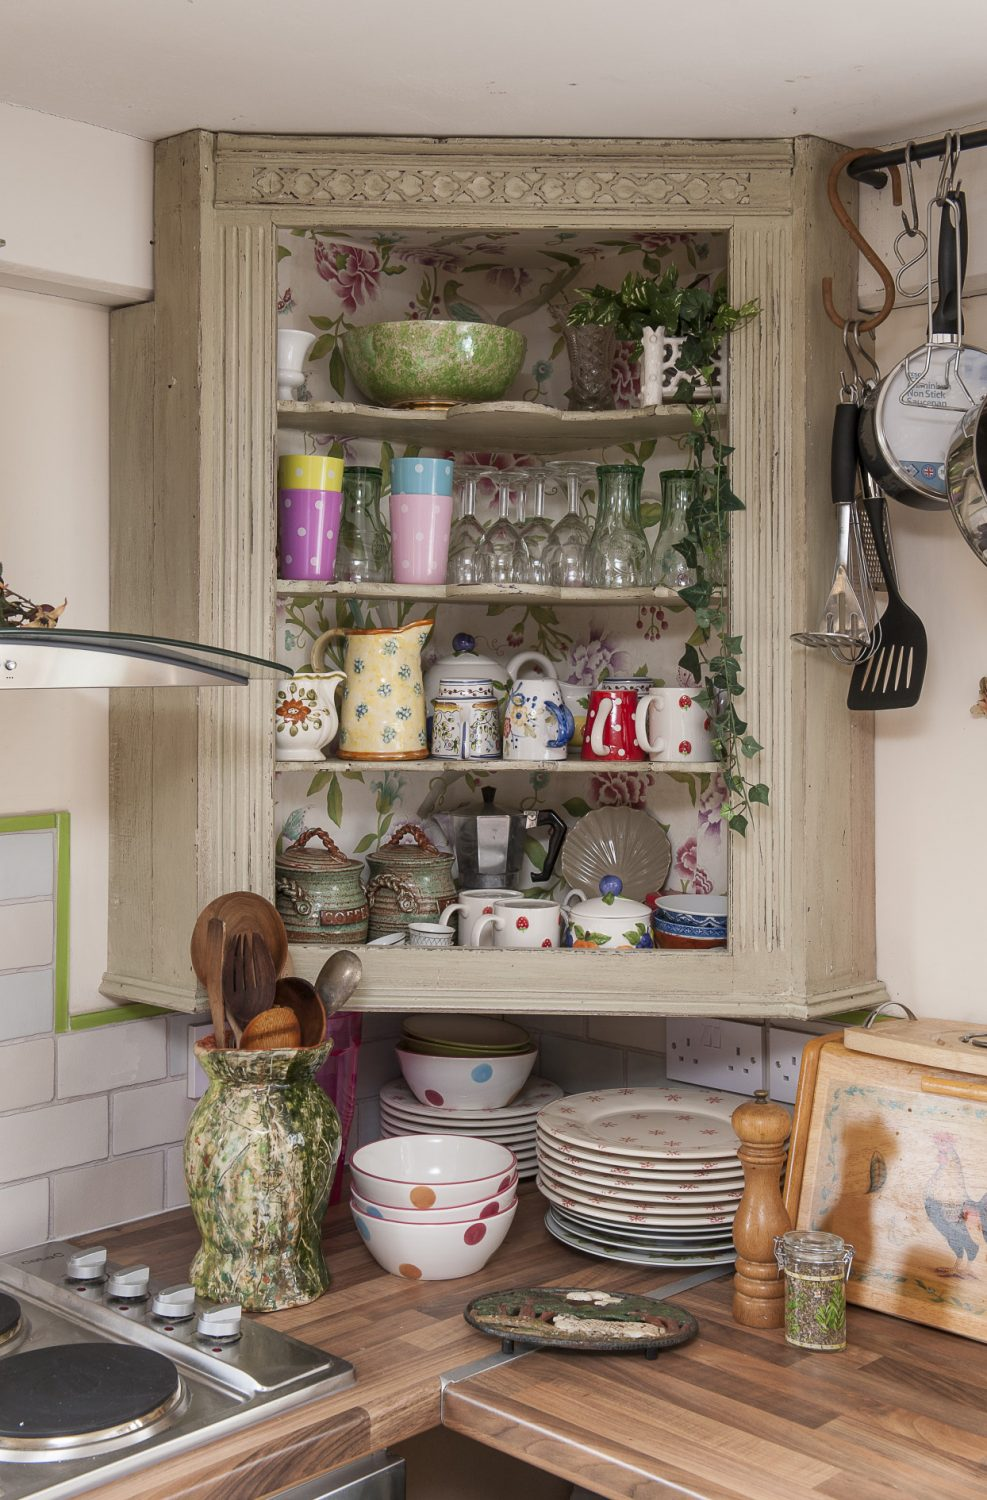 Over the kitchen surface is a corner cupboard which Caroline distressed herself in a pale green. She removed the doors to show the serpentine shelves and papered the interior